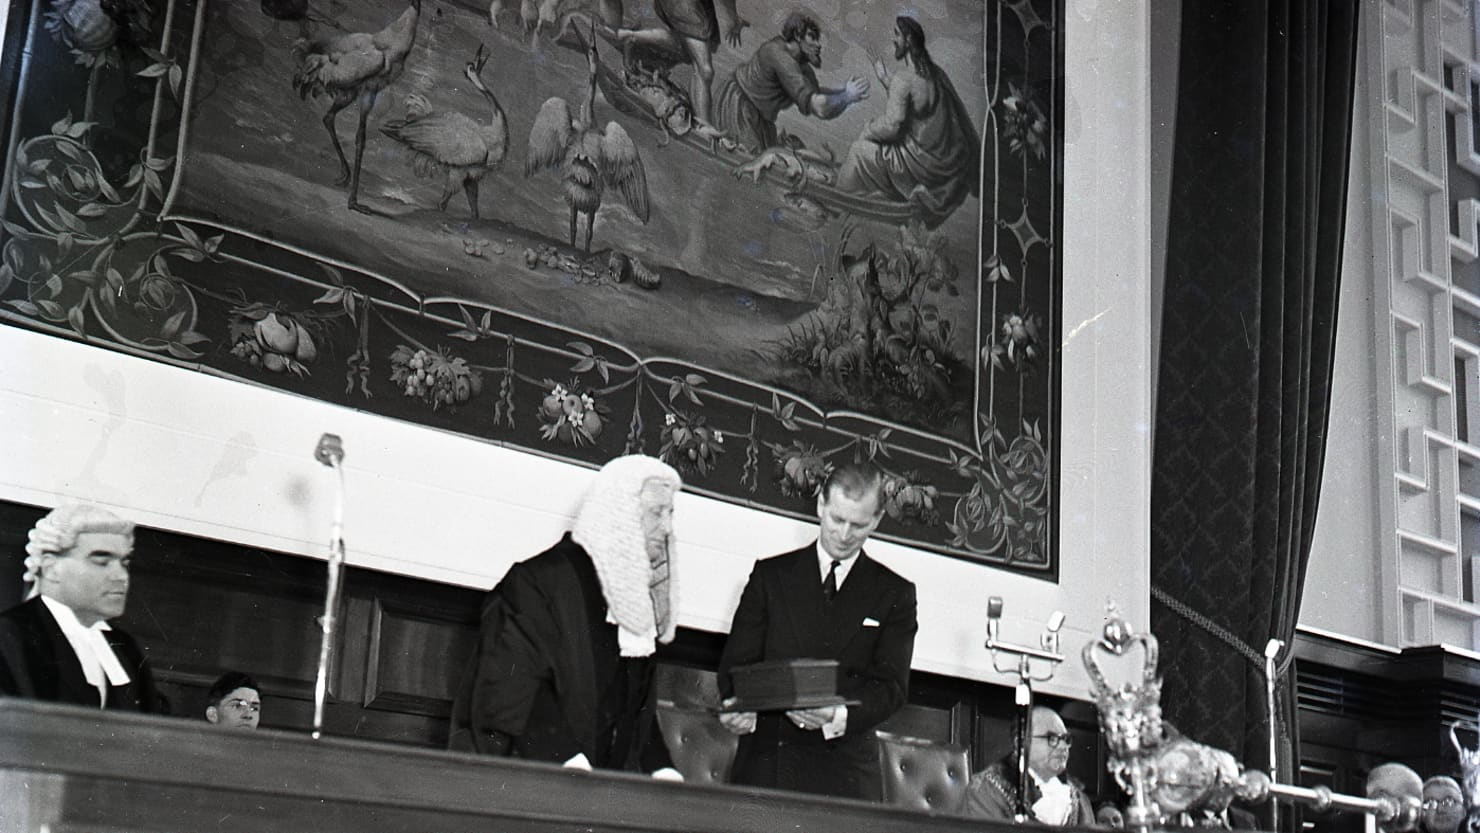 Prince Philip is installed as Lord High Steward at Plymouth Guildhall in March 1960 © Mirrorpix